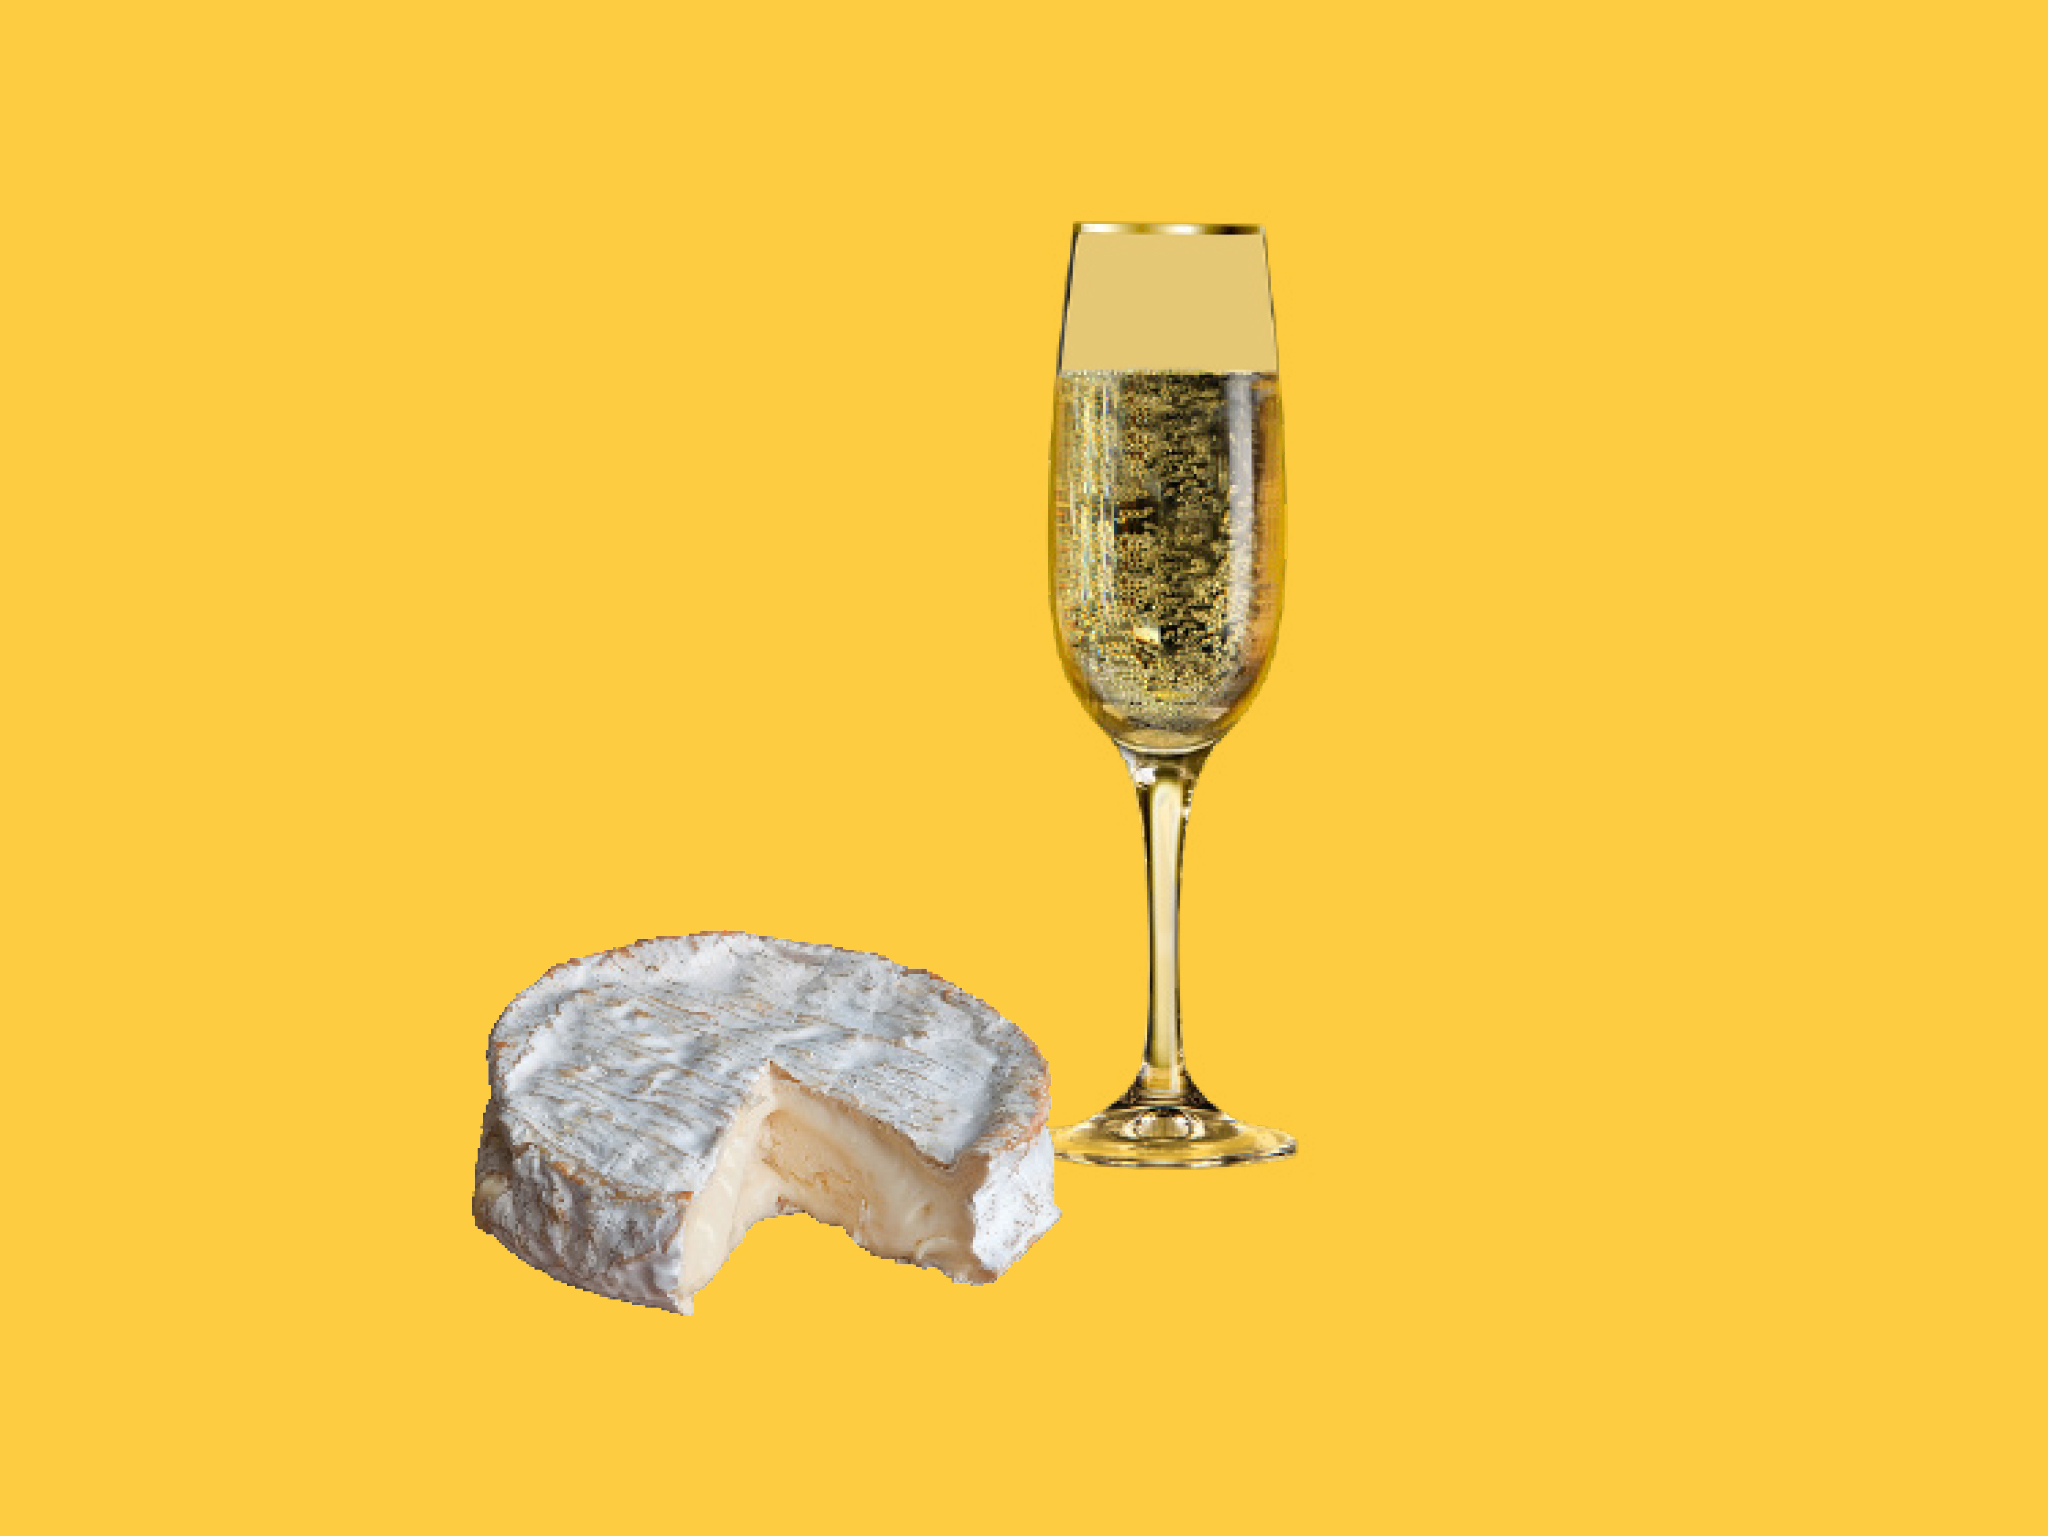 Triple cream Brie and Champagne